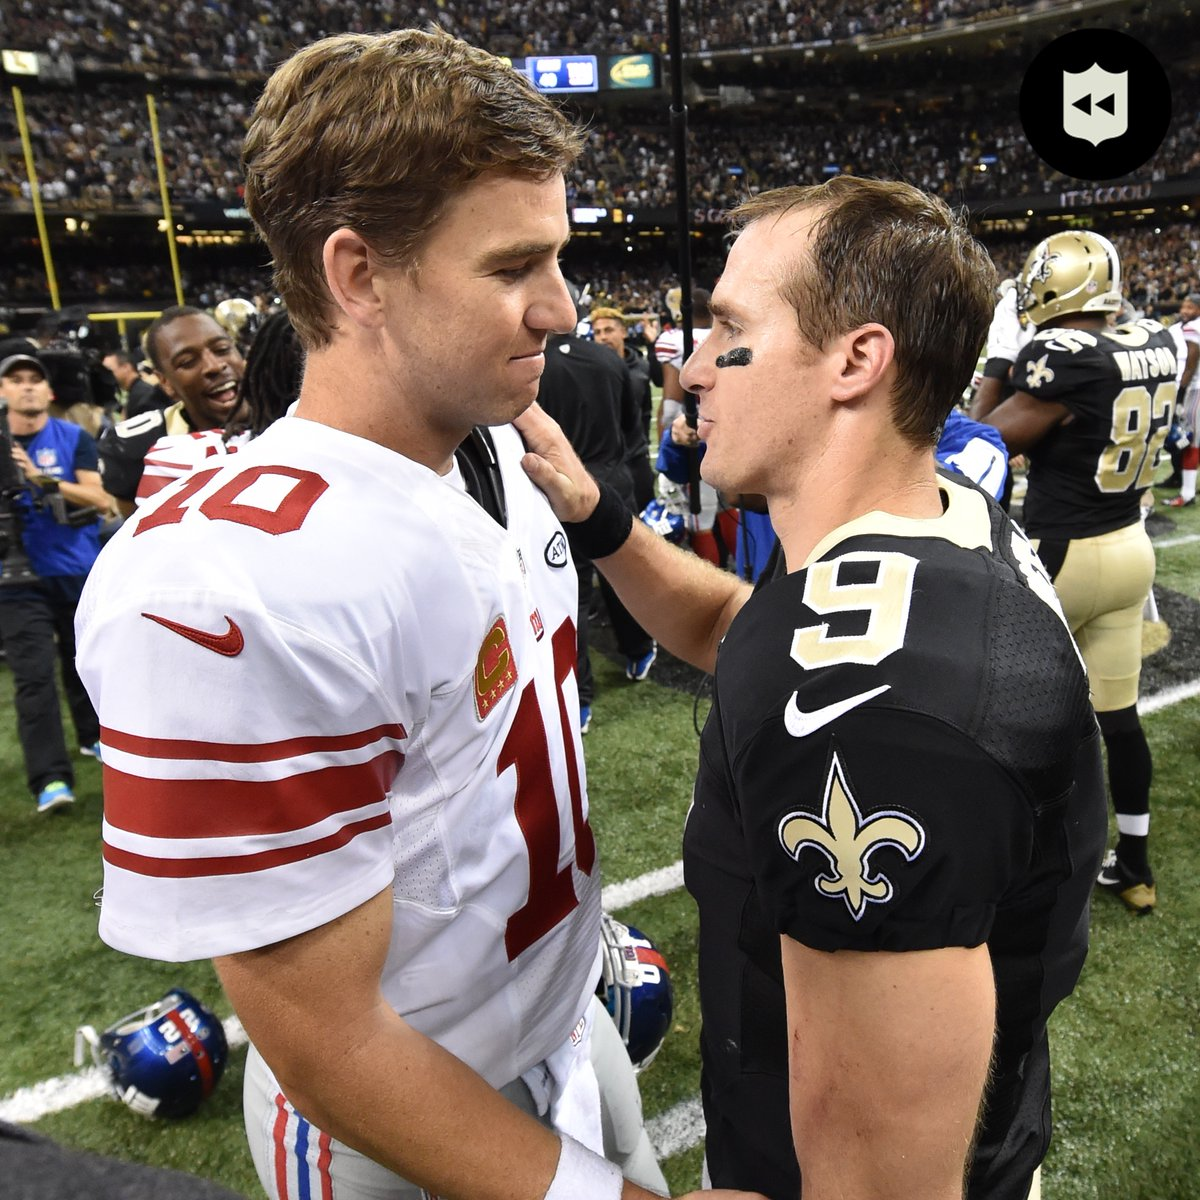 A QB duel for the ages. (Nov. 1, 2015)  @drewbrees: 7 passing touchdowns @EliManning: 6 passing touchdowns https://t.co/k1H1eq4tvl